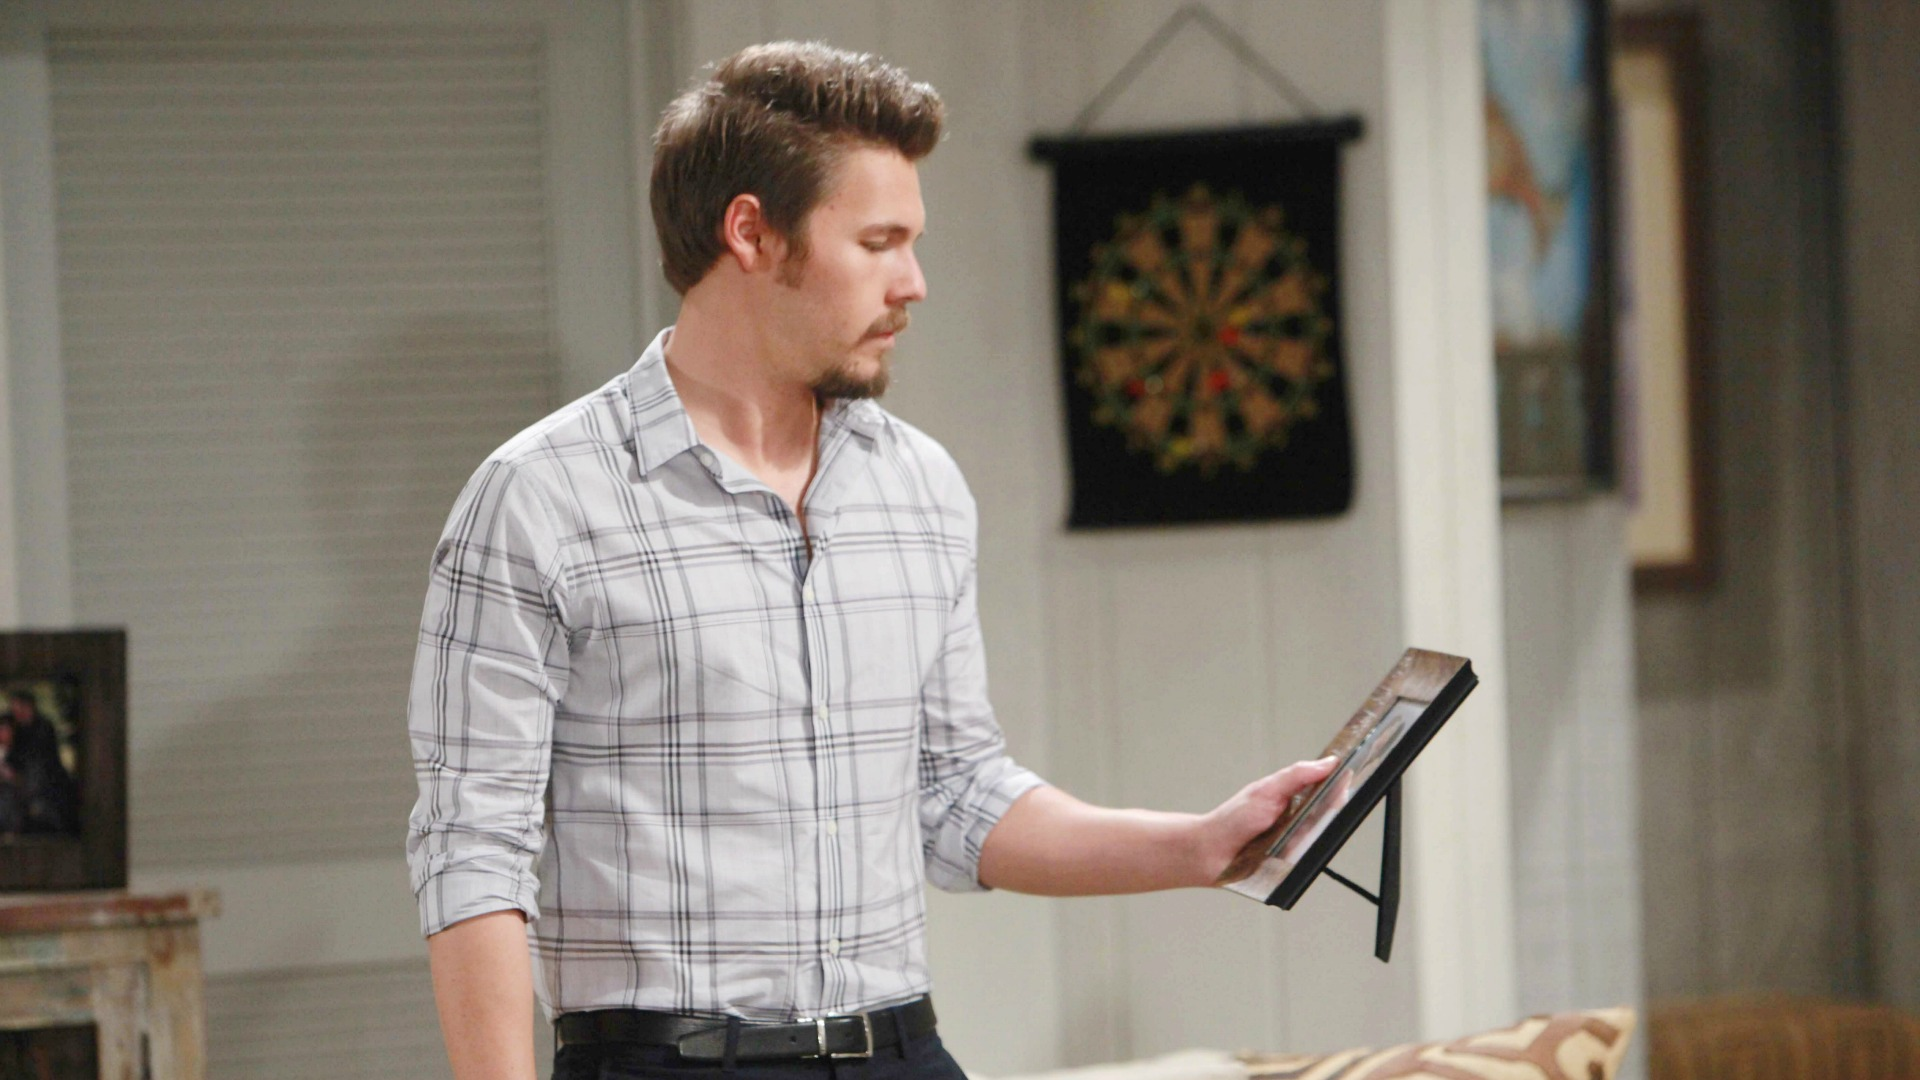 Out of Quinn's clutches, Liam becomes determined to take back everything that is his... including Steffy.